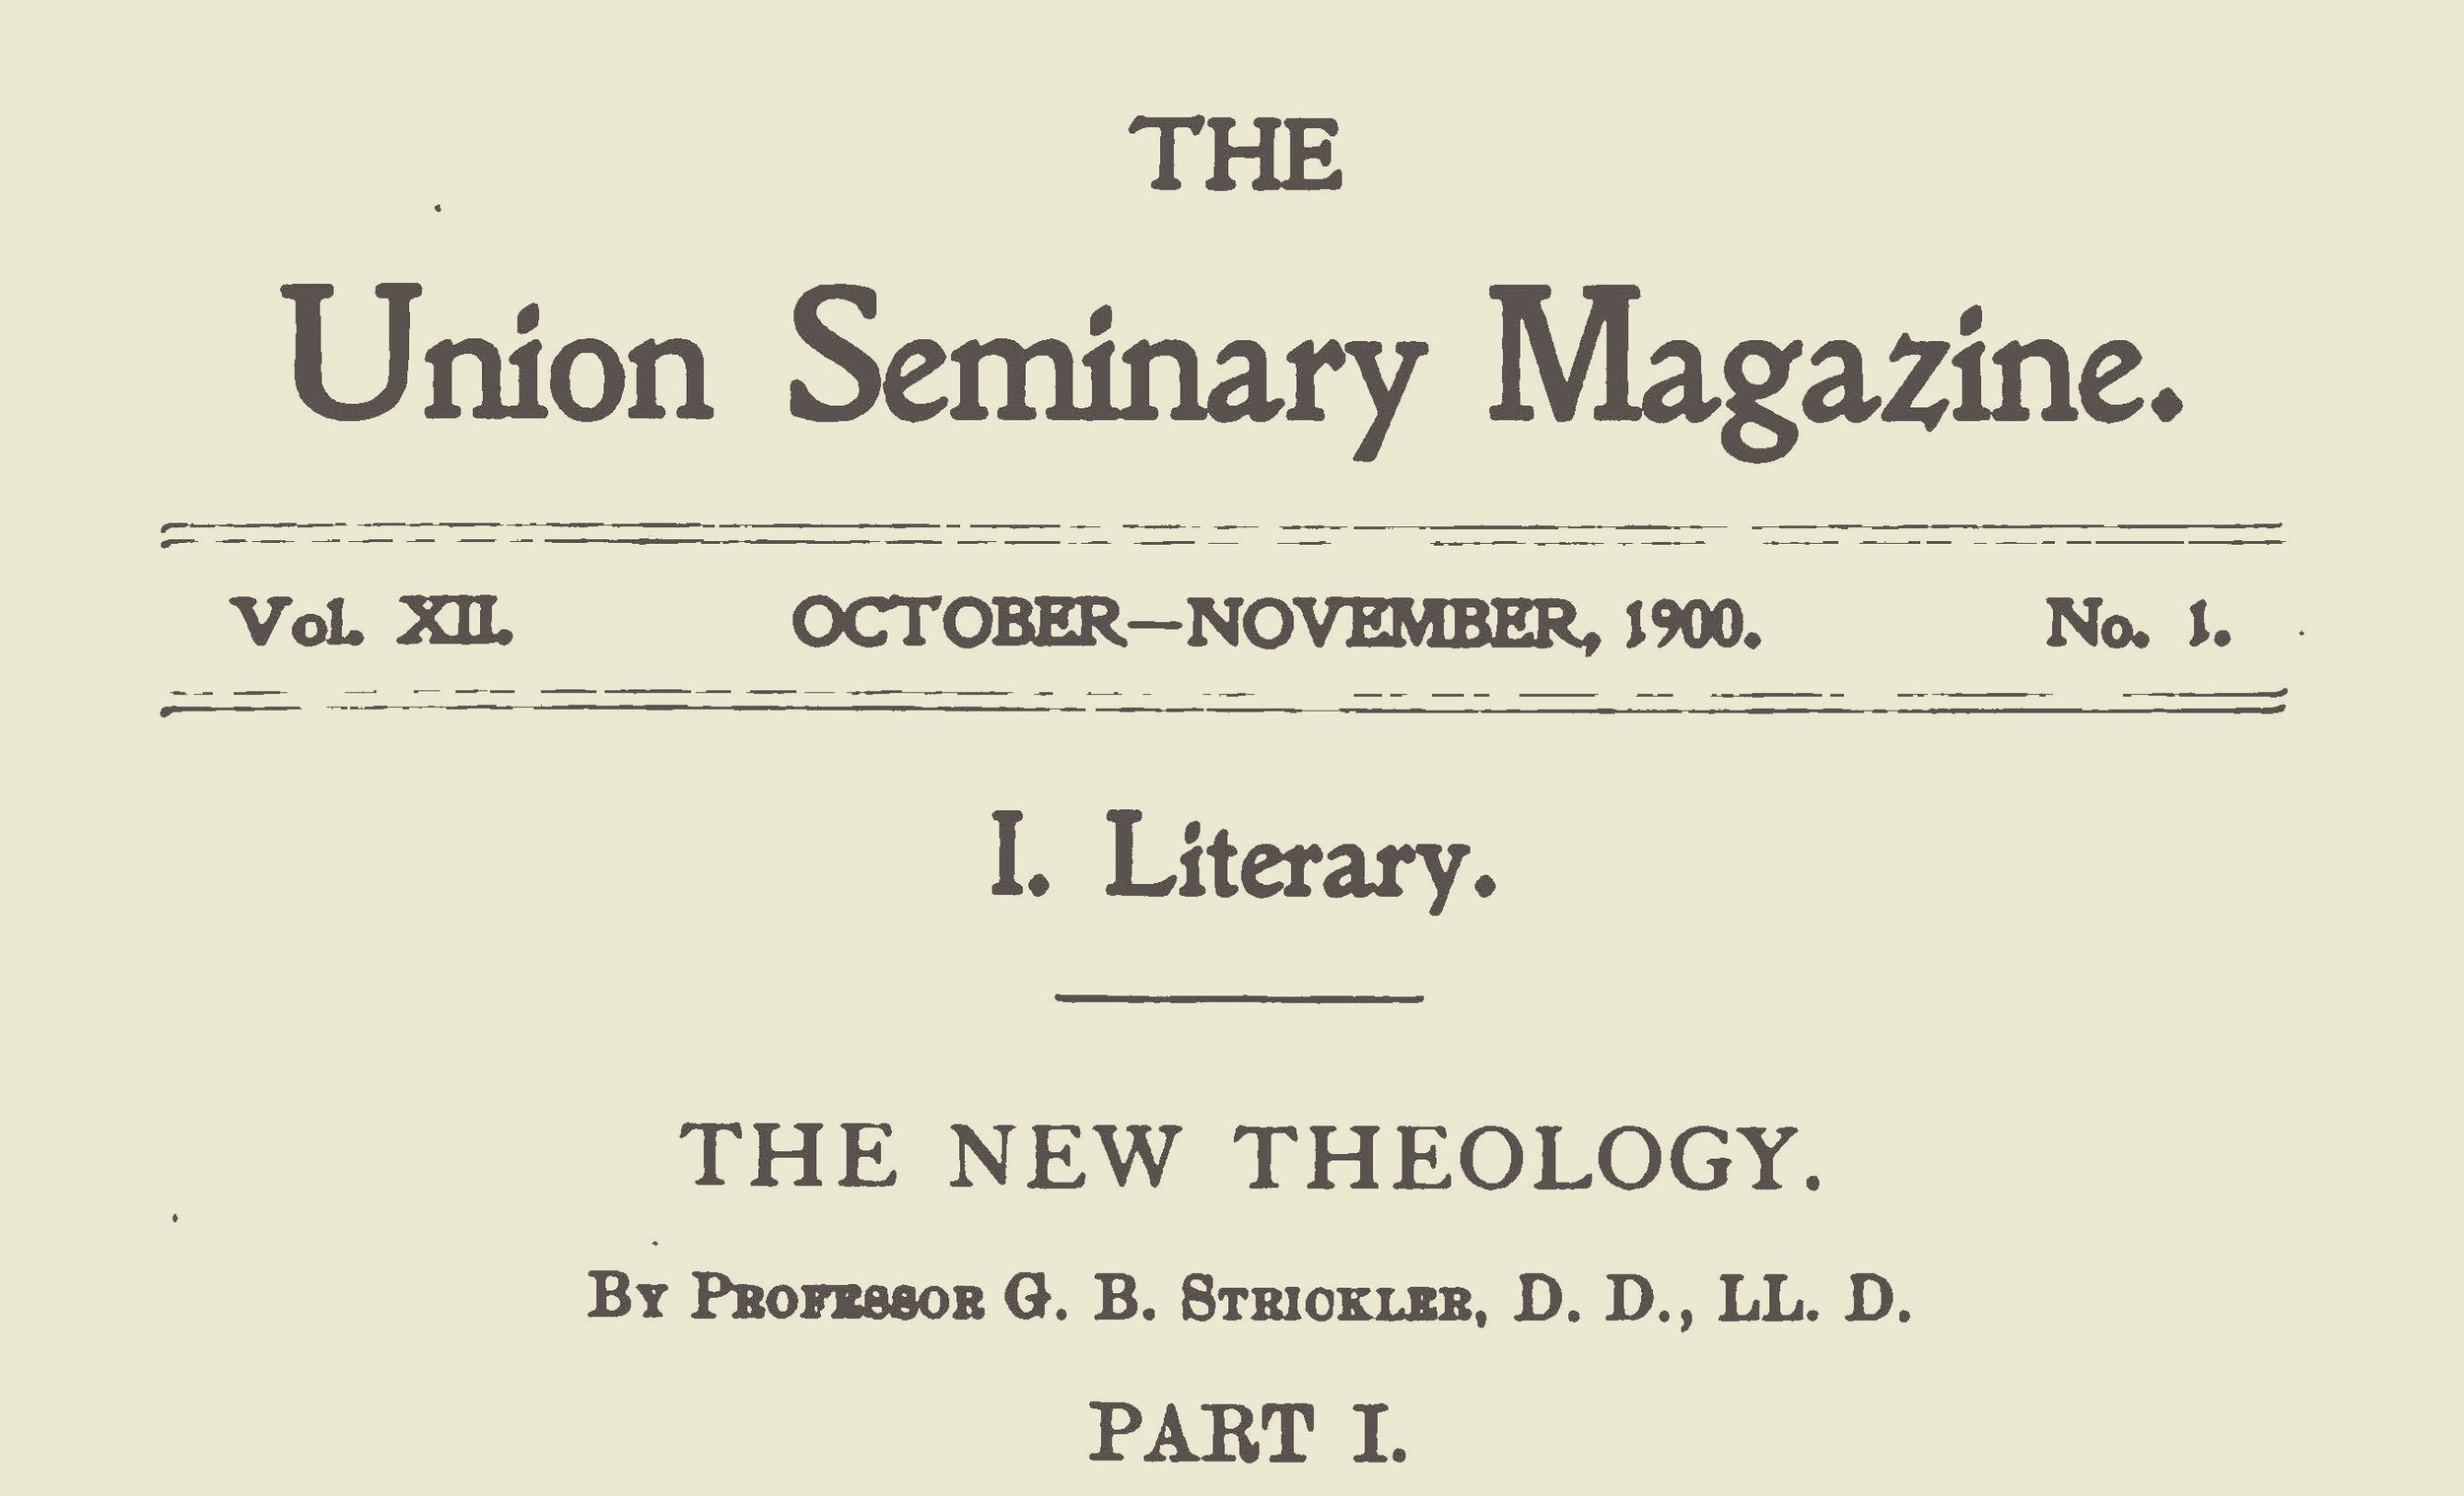 This 4-part article appeared in the October/November 1900; December/January 1901; February/March 1901; and April/May 1901 issues of  The Union Seminary Magazine .